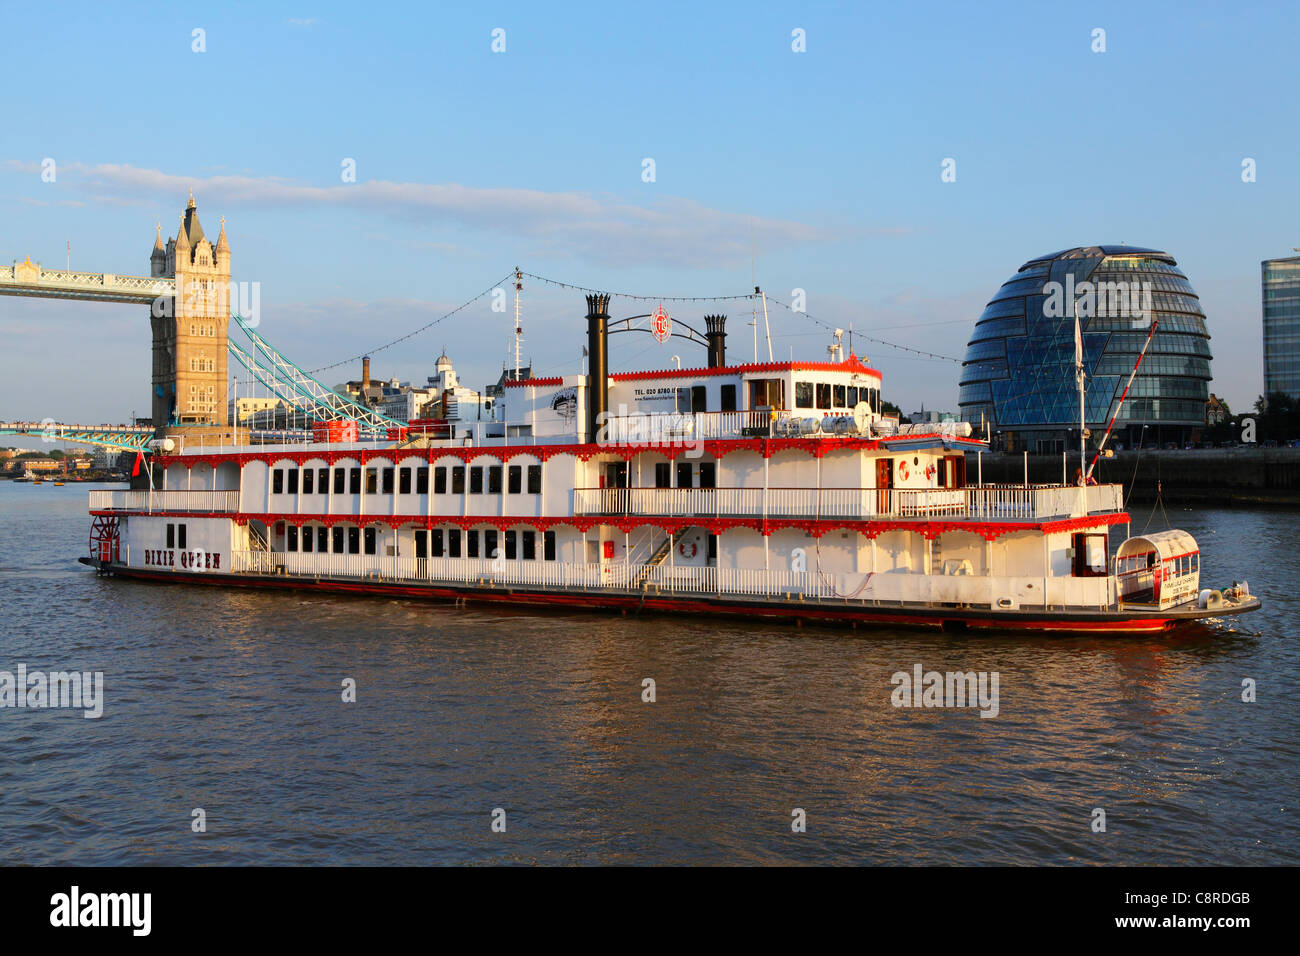 London River Thames paddle steamer, Tower Bridge and City Hall - Stock Image